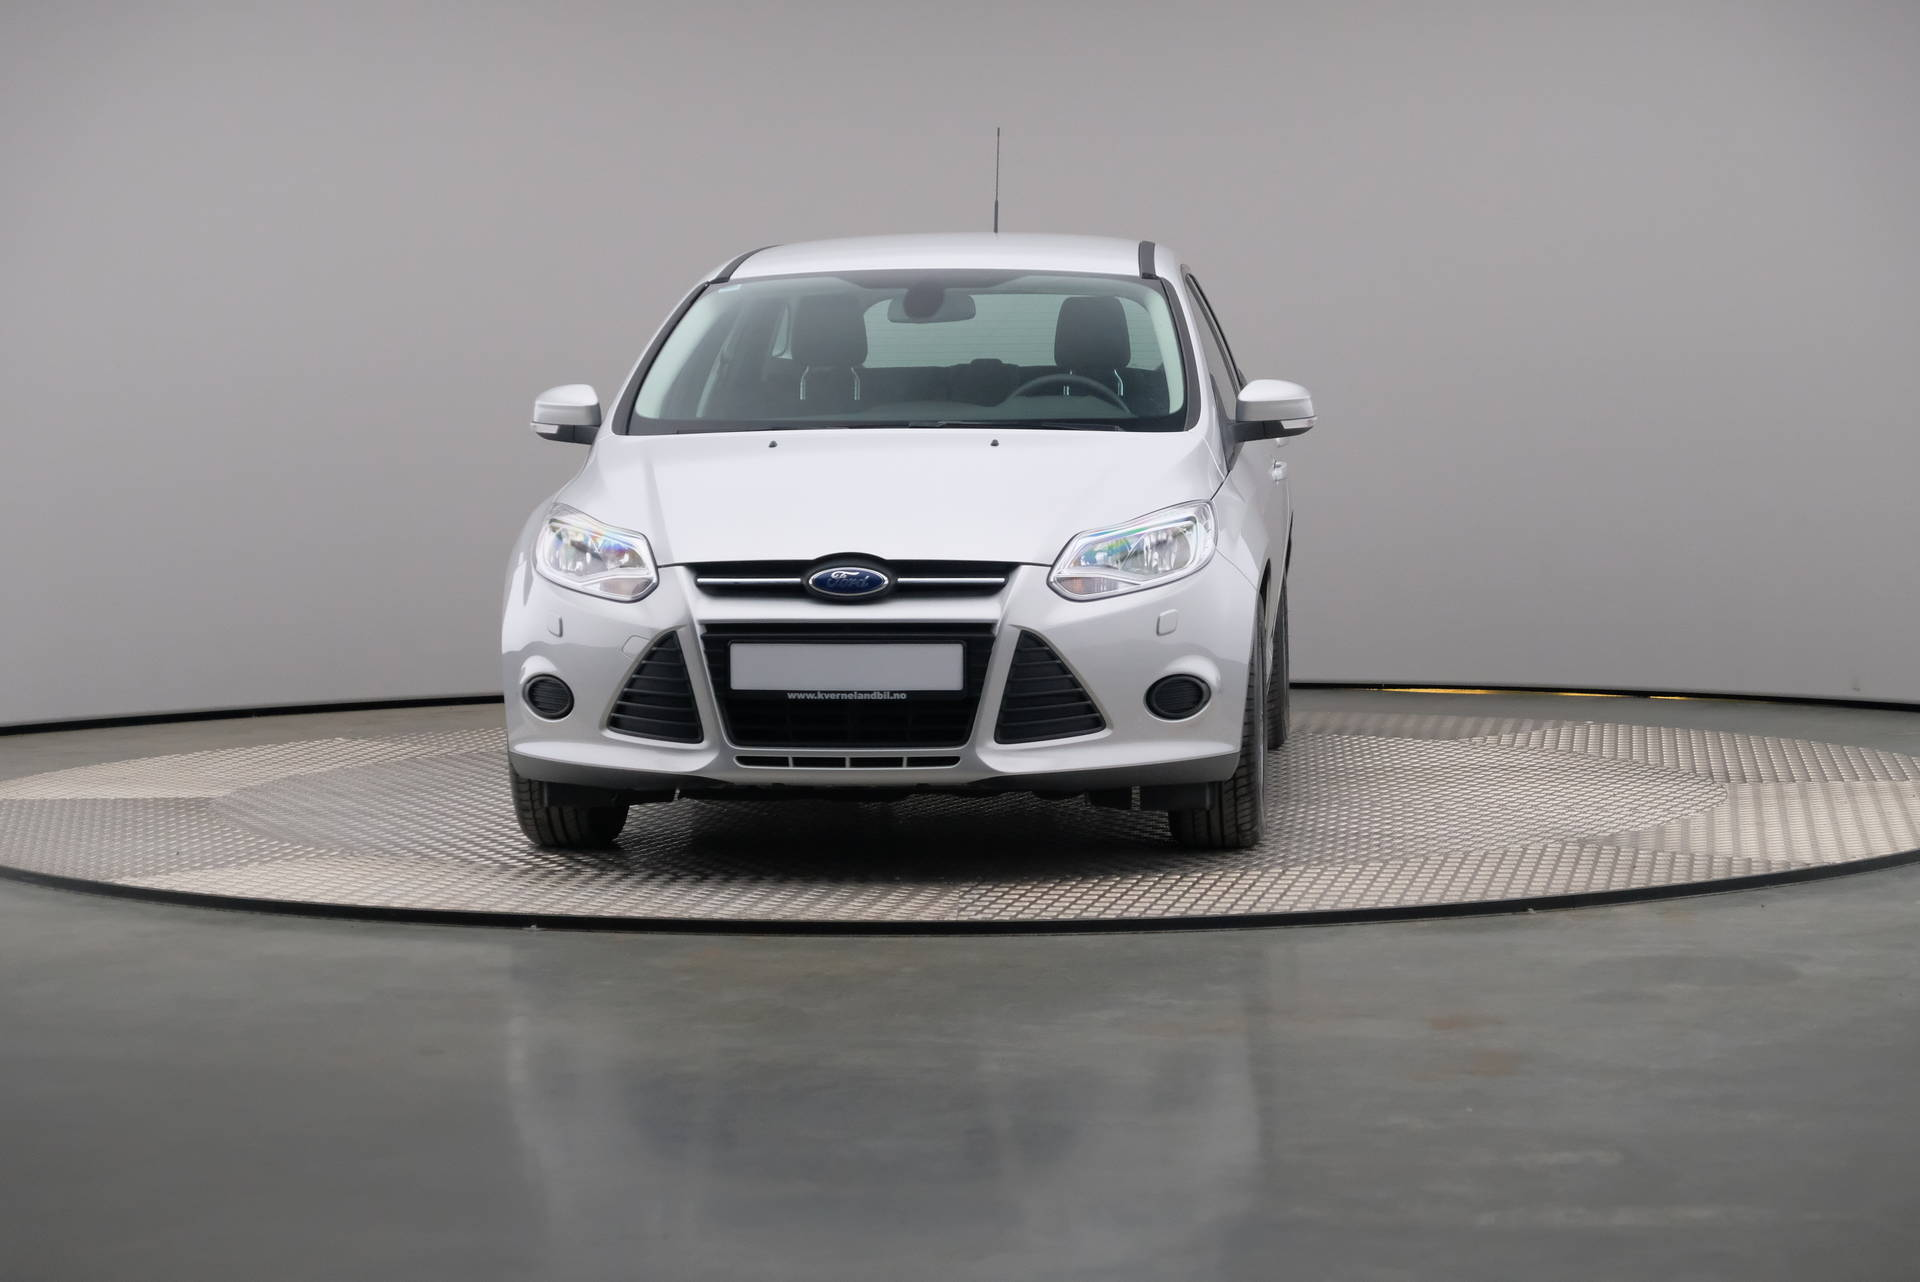 Ford Focus 1.1 100HK Trend PDC/BT, 360-image32